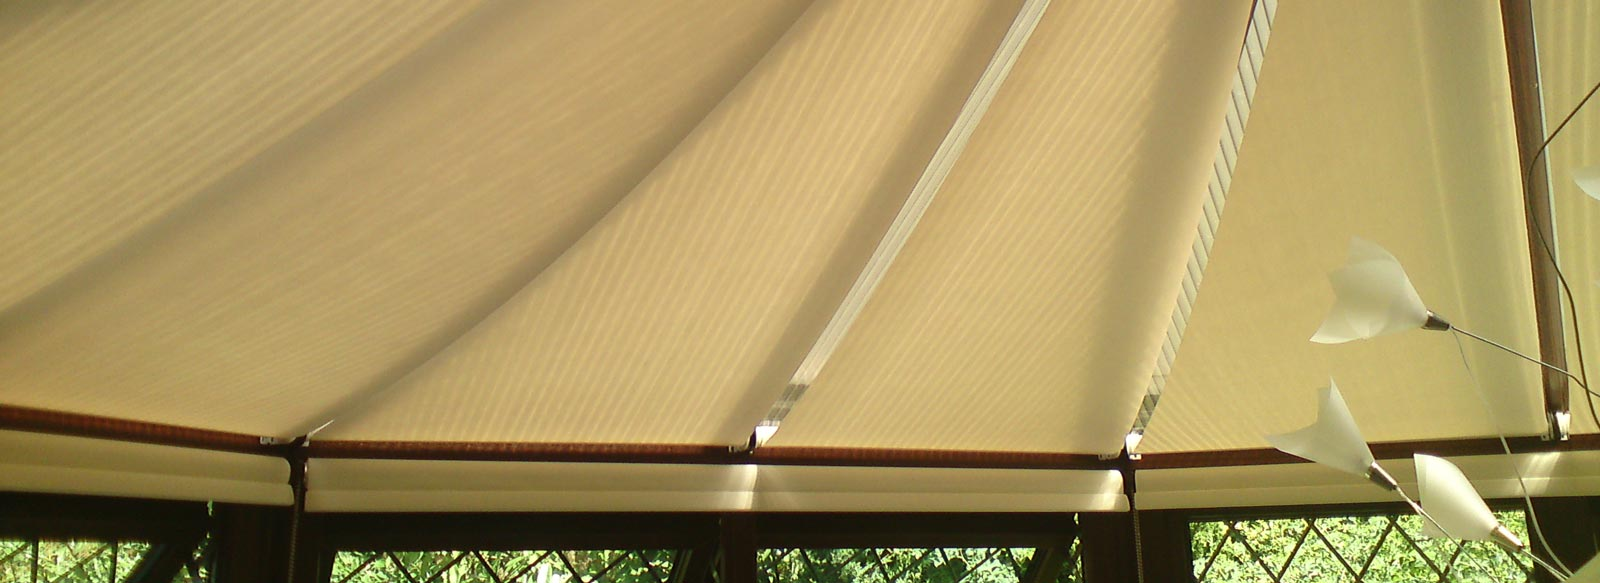 conservatory-roof-roller-blinds-1600